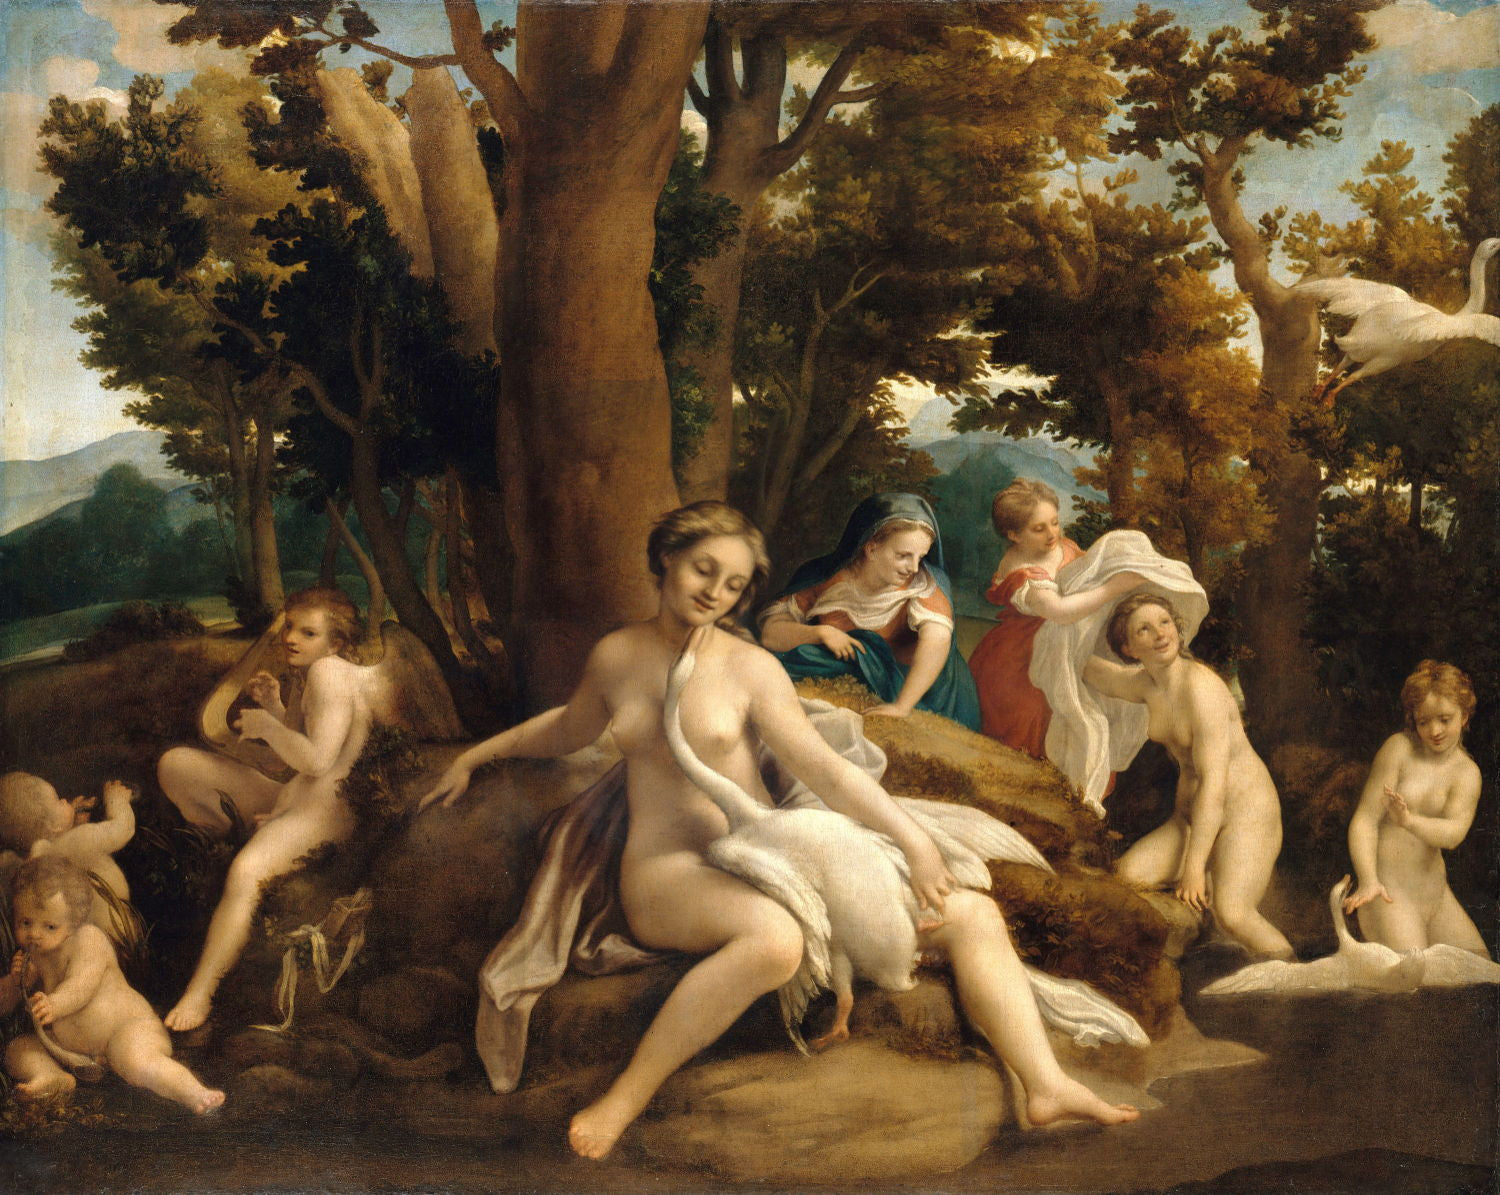 Antonio Allegri da Correggio | Buy Posters, Frames, Canvas, Digital Art & Large Size Prints Of The Famous Old Master's Artworks